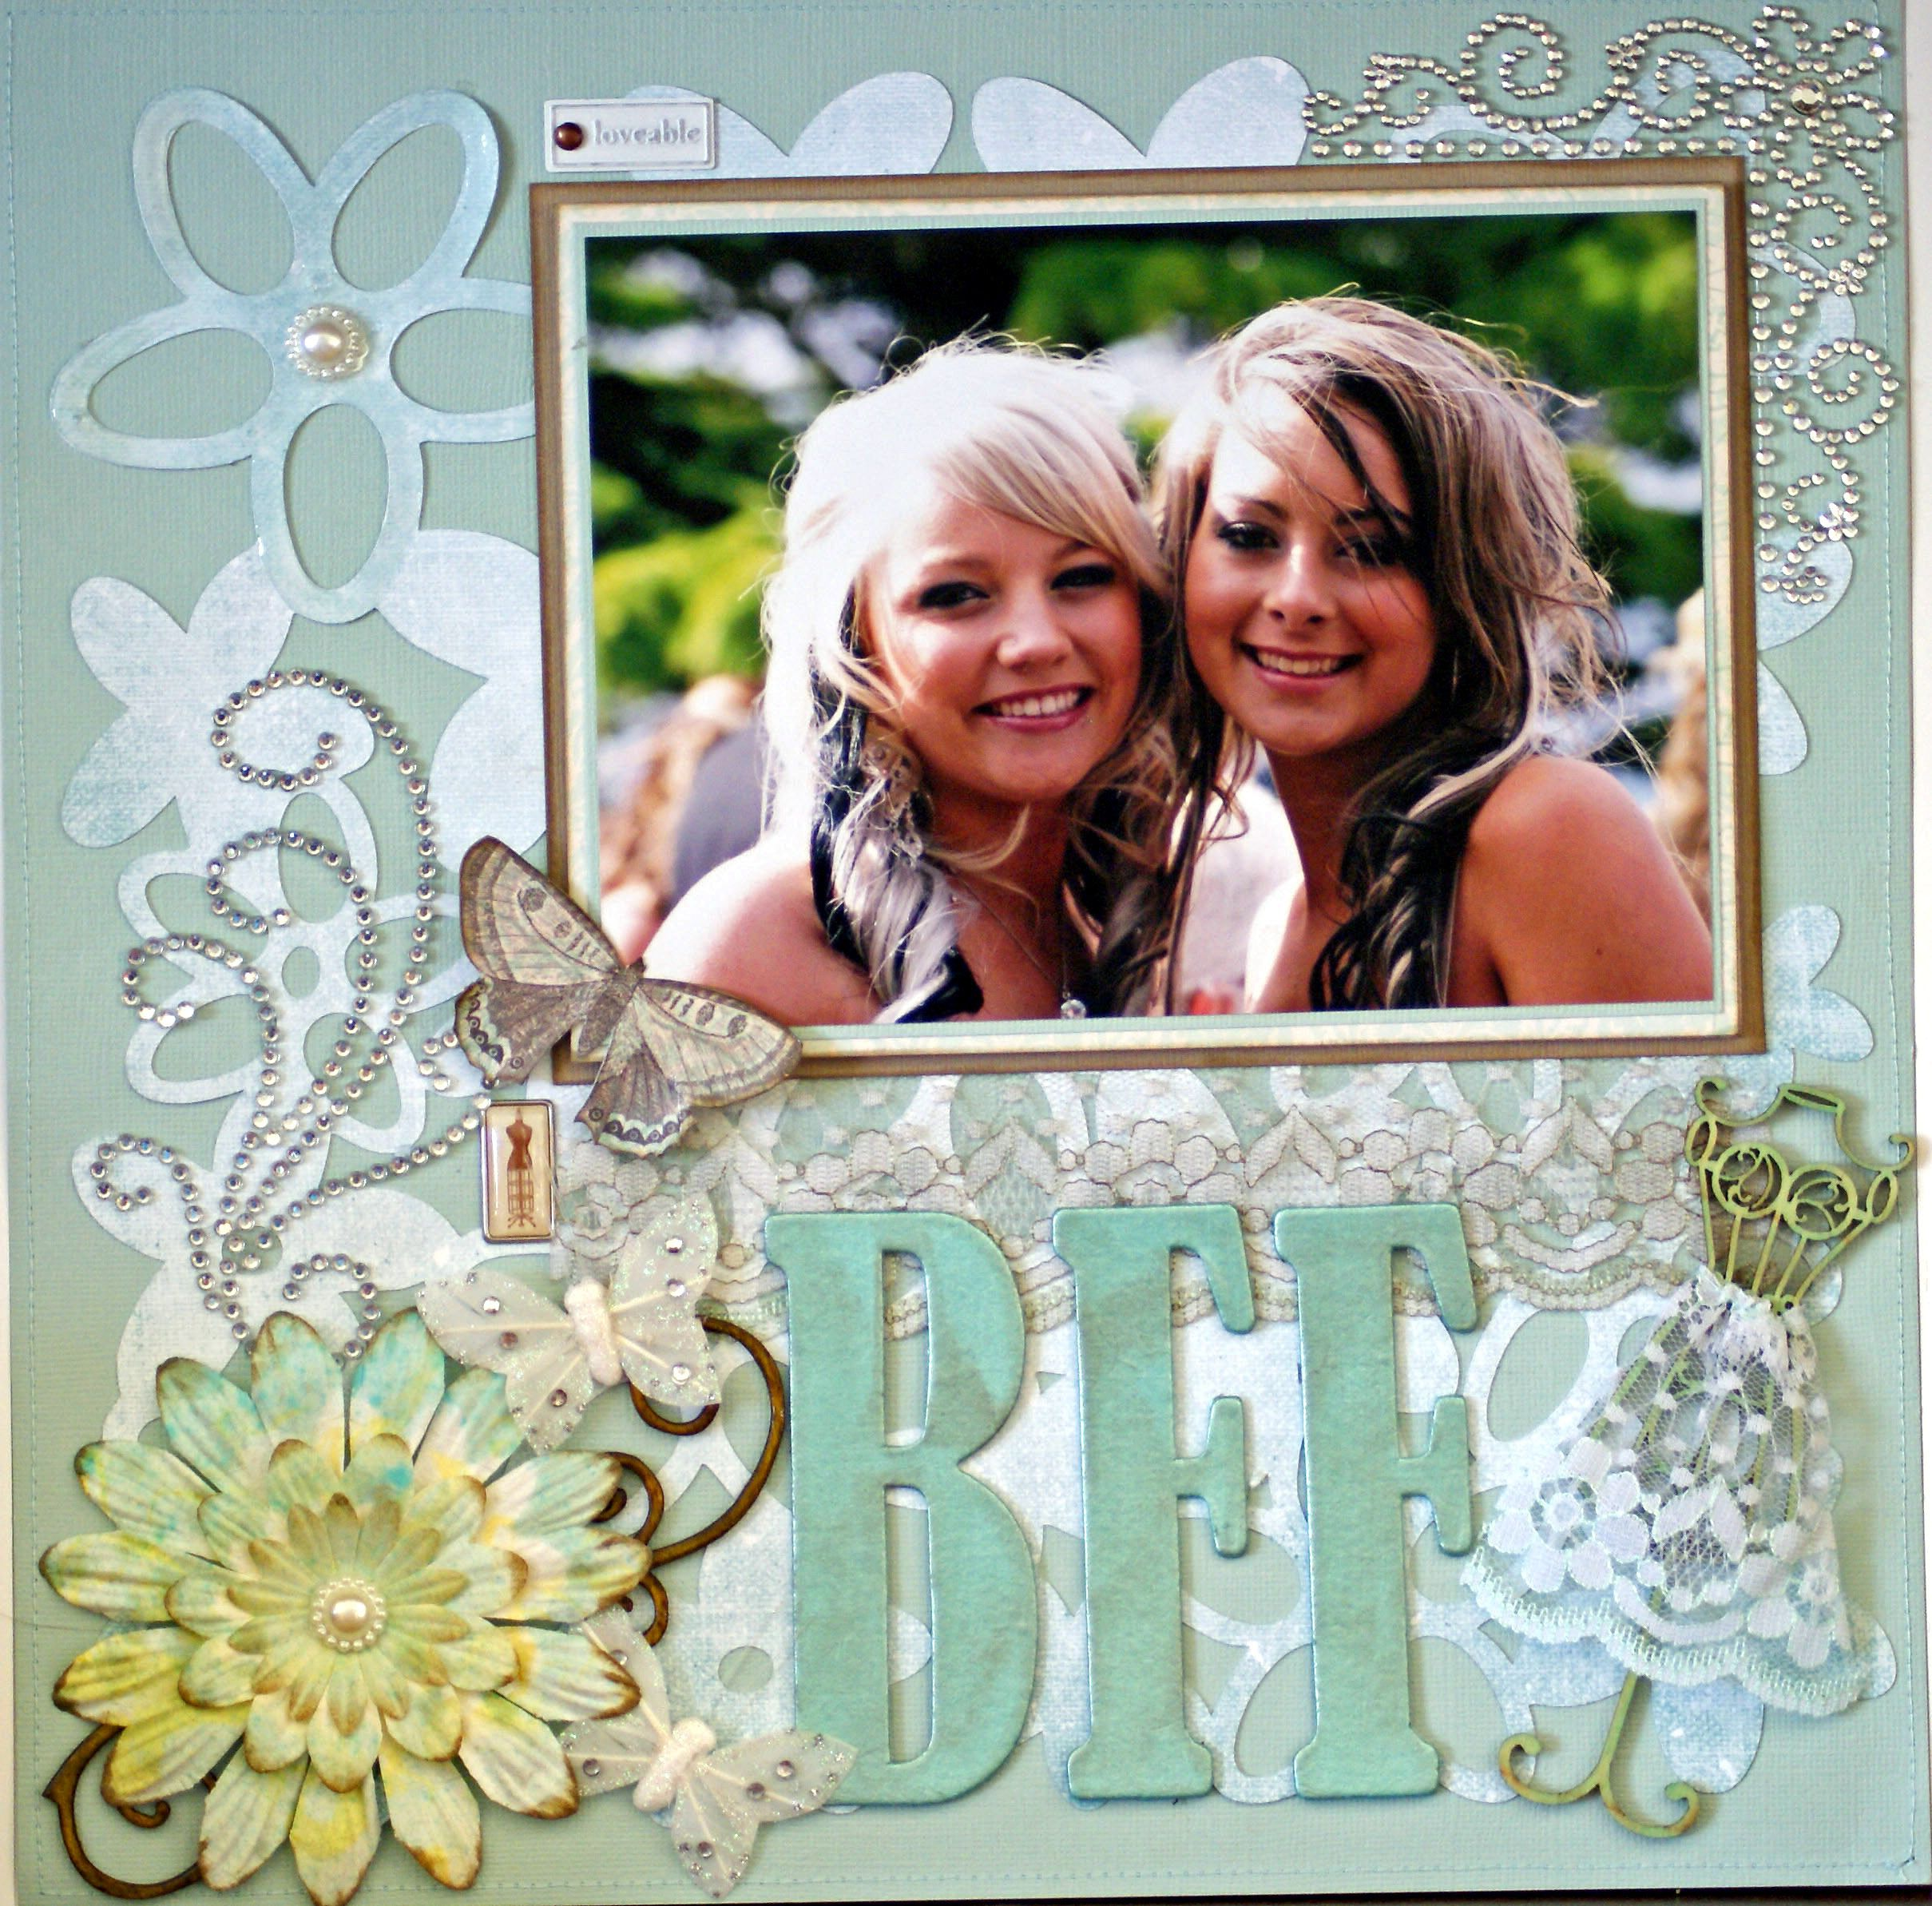 Best friend scrapbook ideas - This Is A Fantastic Idea For A Present Collect Photos Of You And Your Best